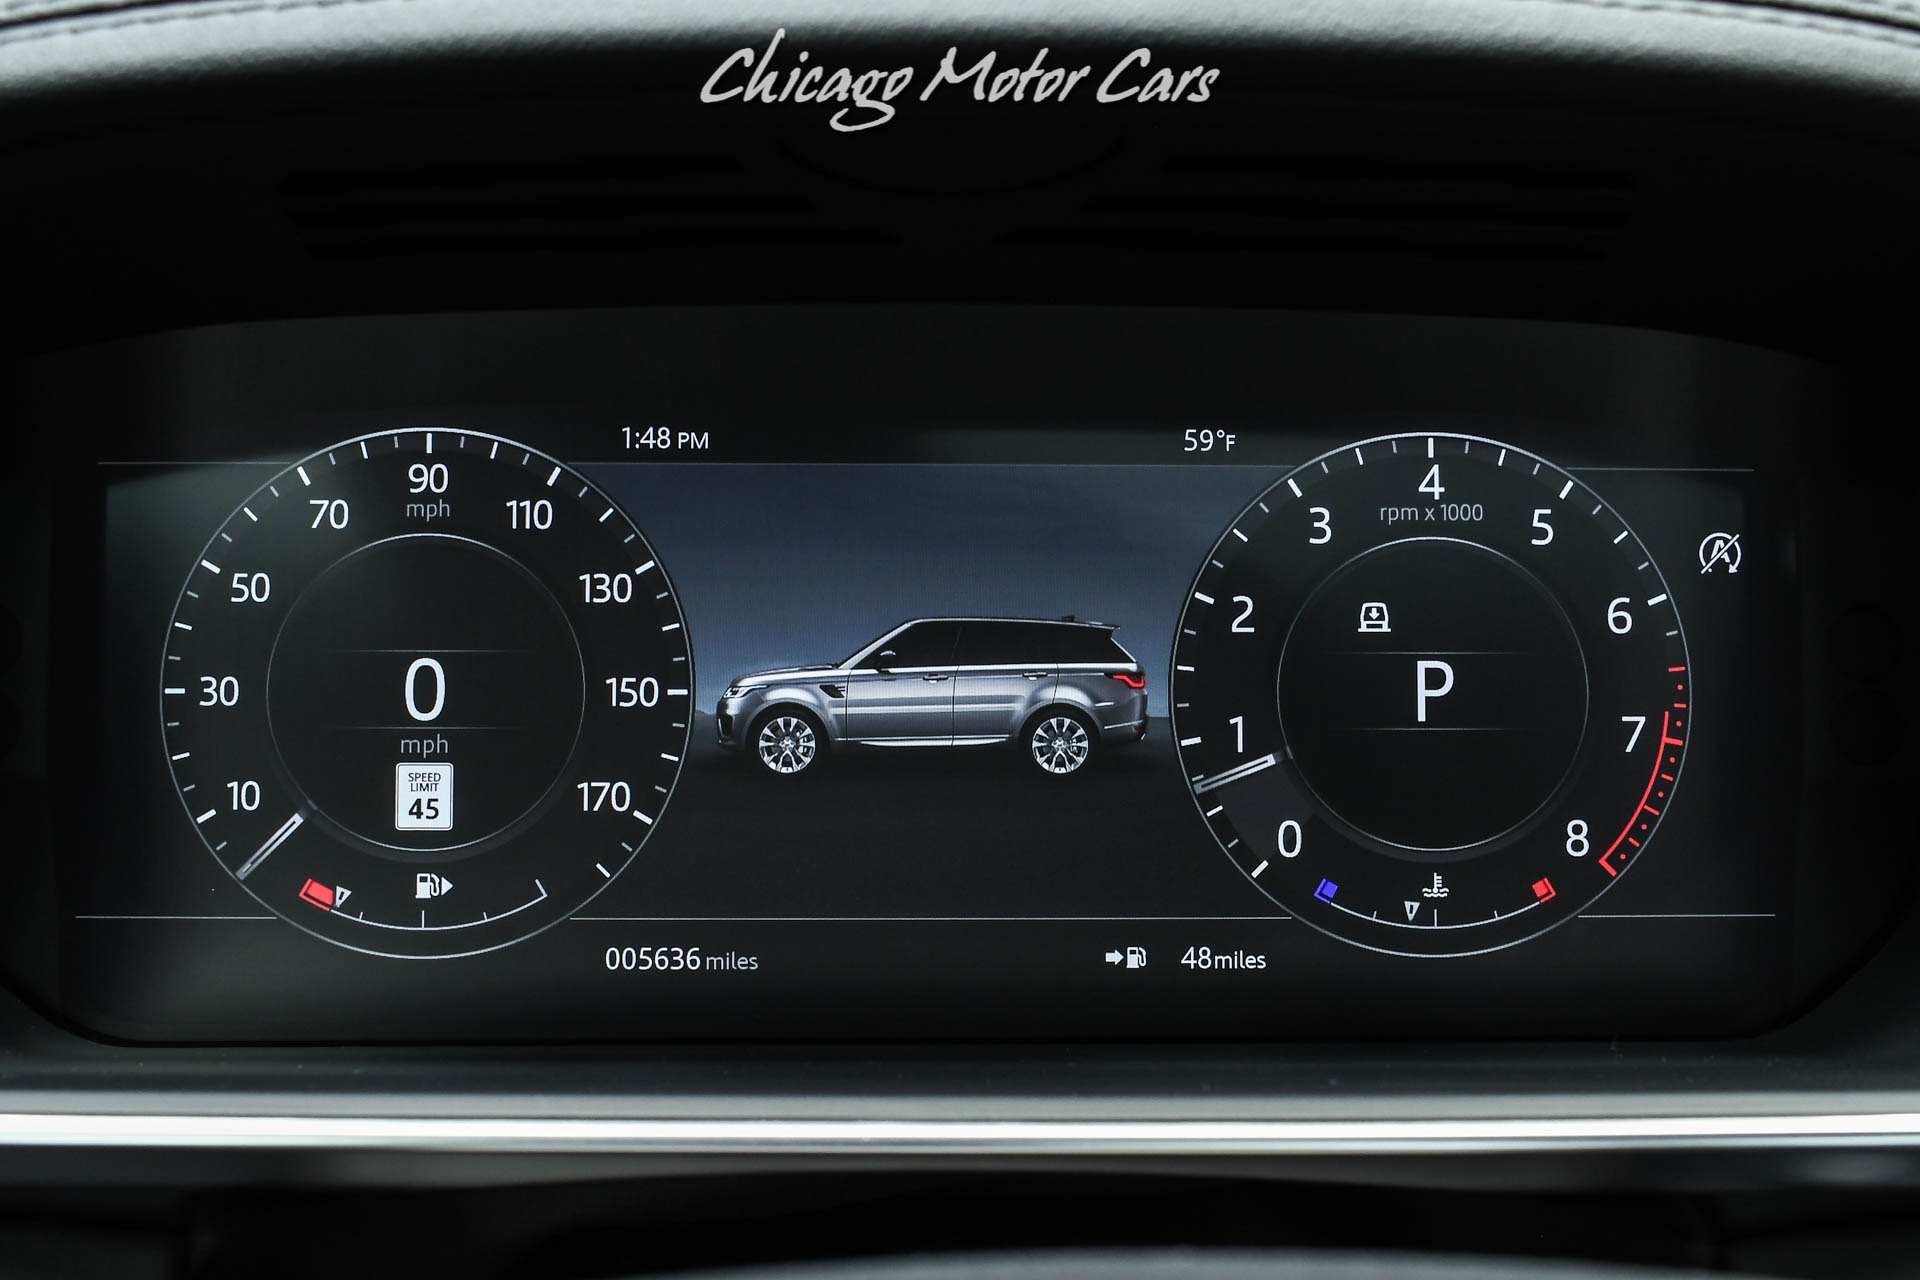 Used-2020-Land-Rover-Range-Rover-Sport-P525-HSE-Dynamic-Drive-Pack-Pro-Vision-Assist-LOW-Miles